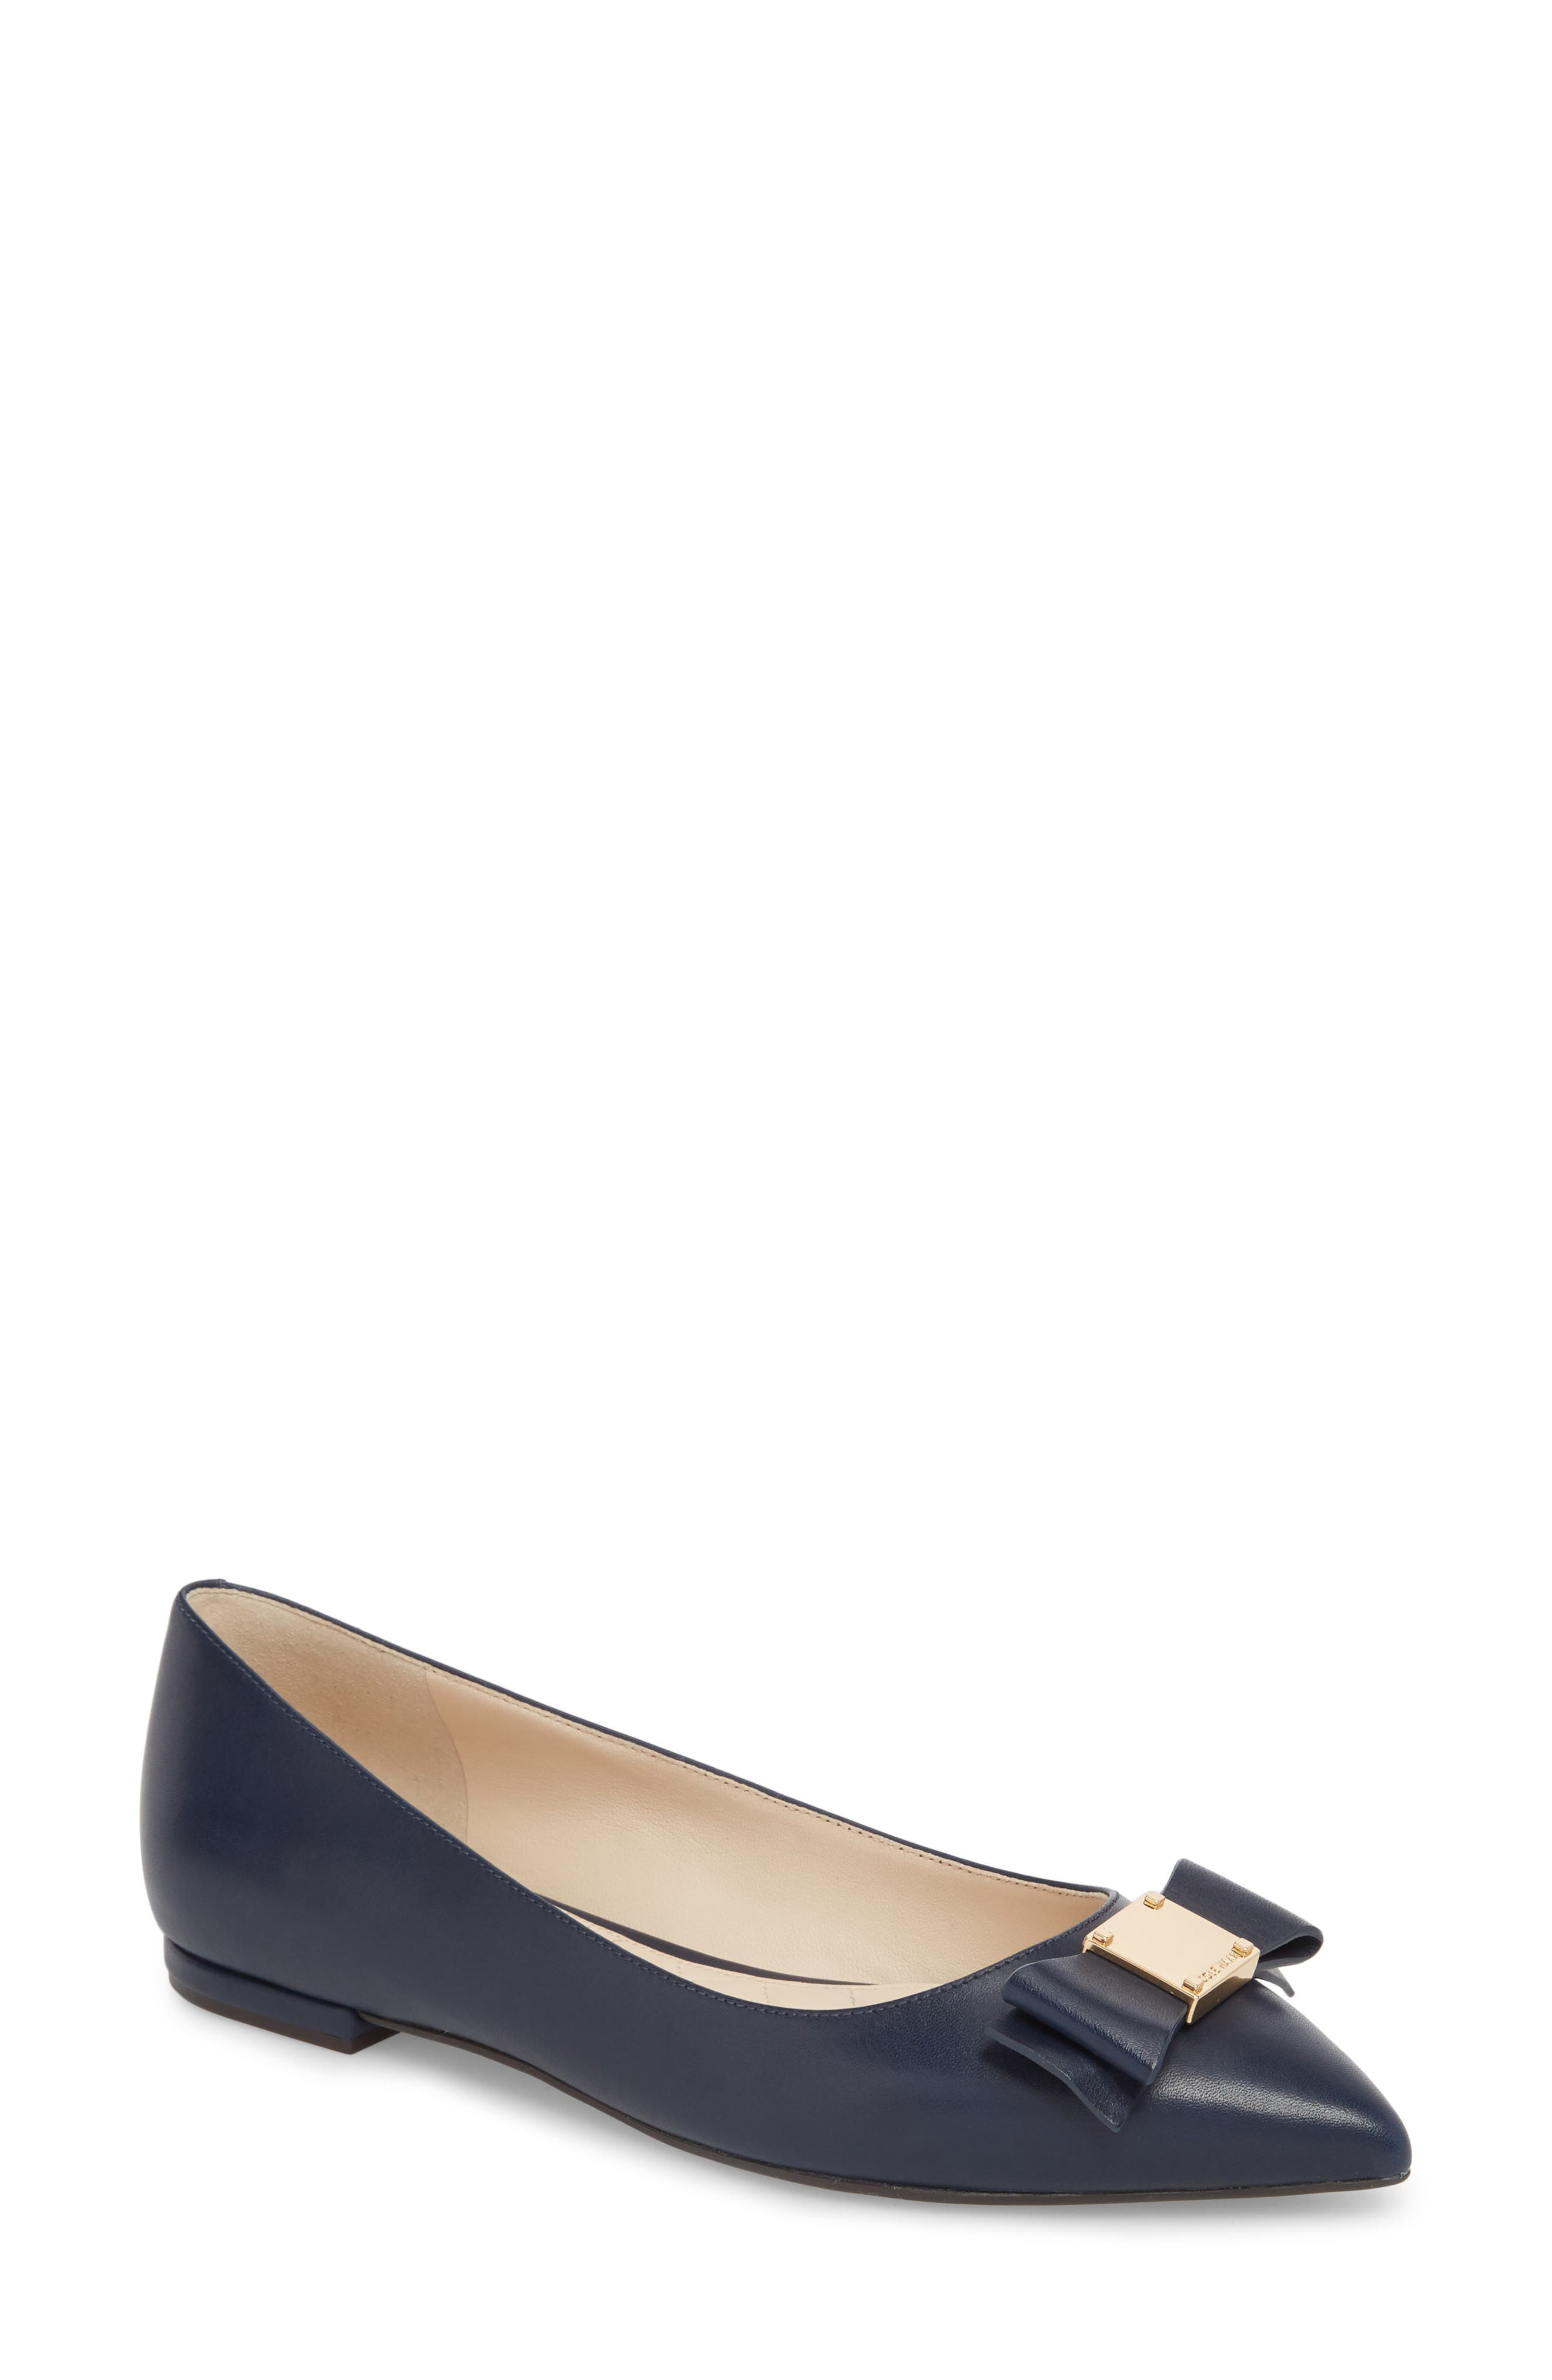 COLE HAAN Tali Bow Skimmer Flat, Main, color, 400